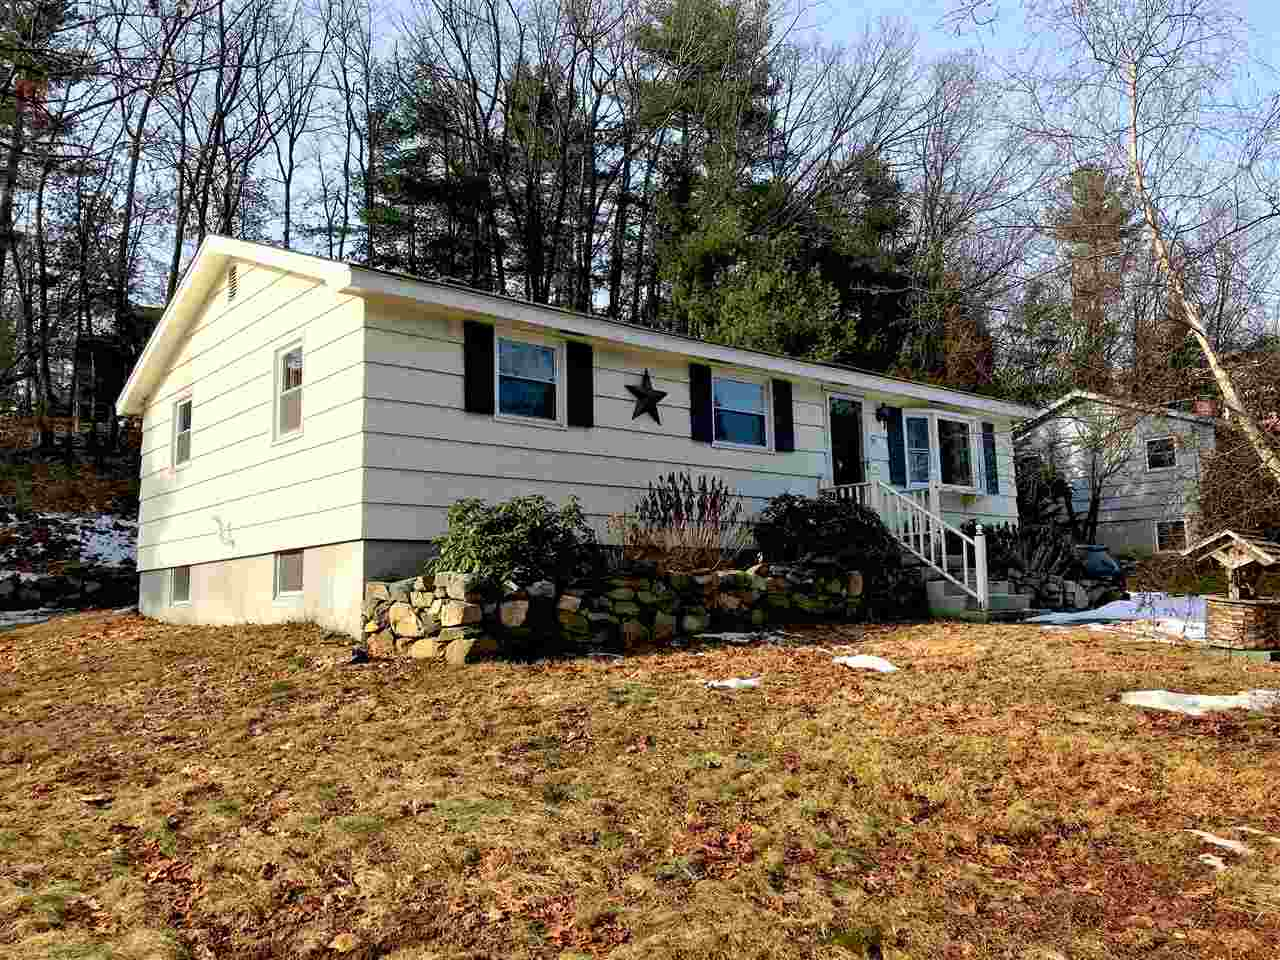 MLS 4787180: 93 Conant Road, Nashua NH